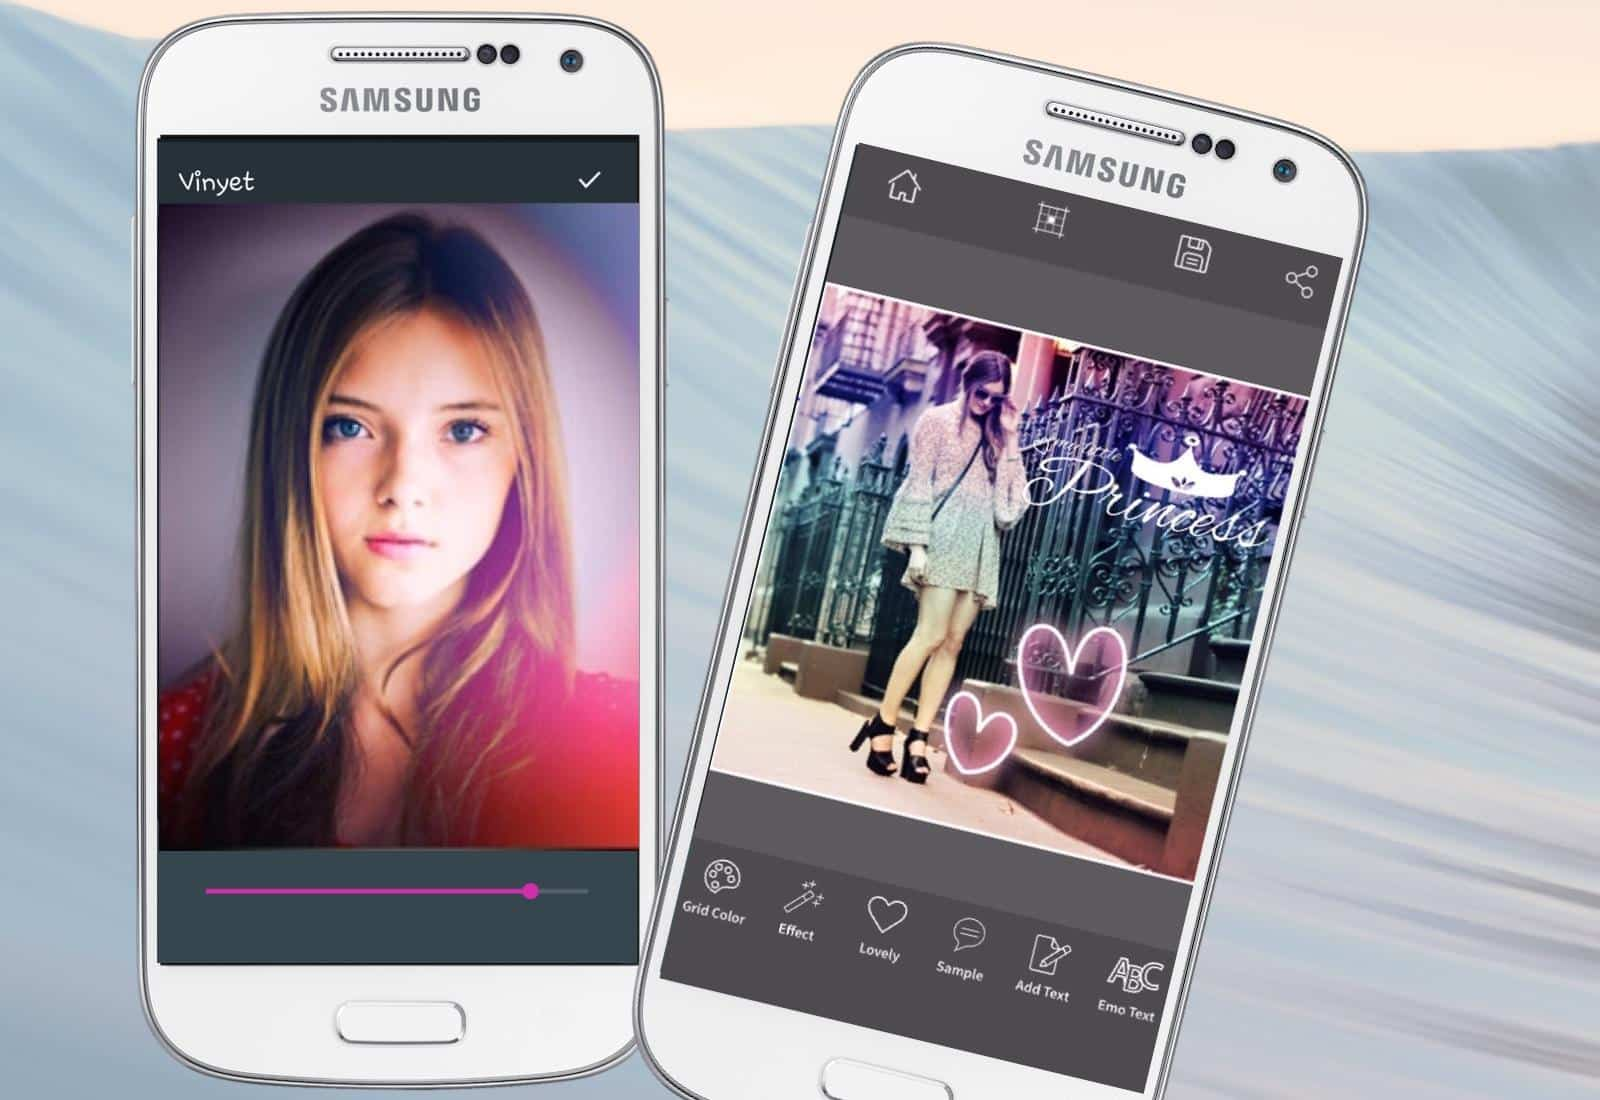 Download-B612-APK-Terbaru